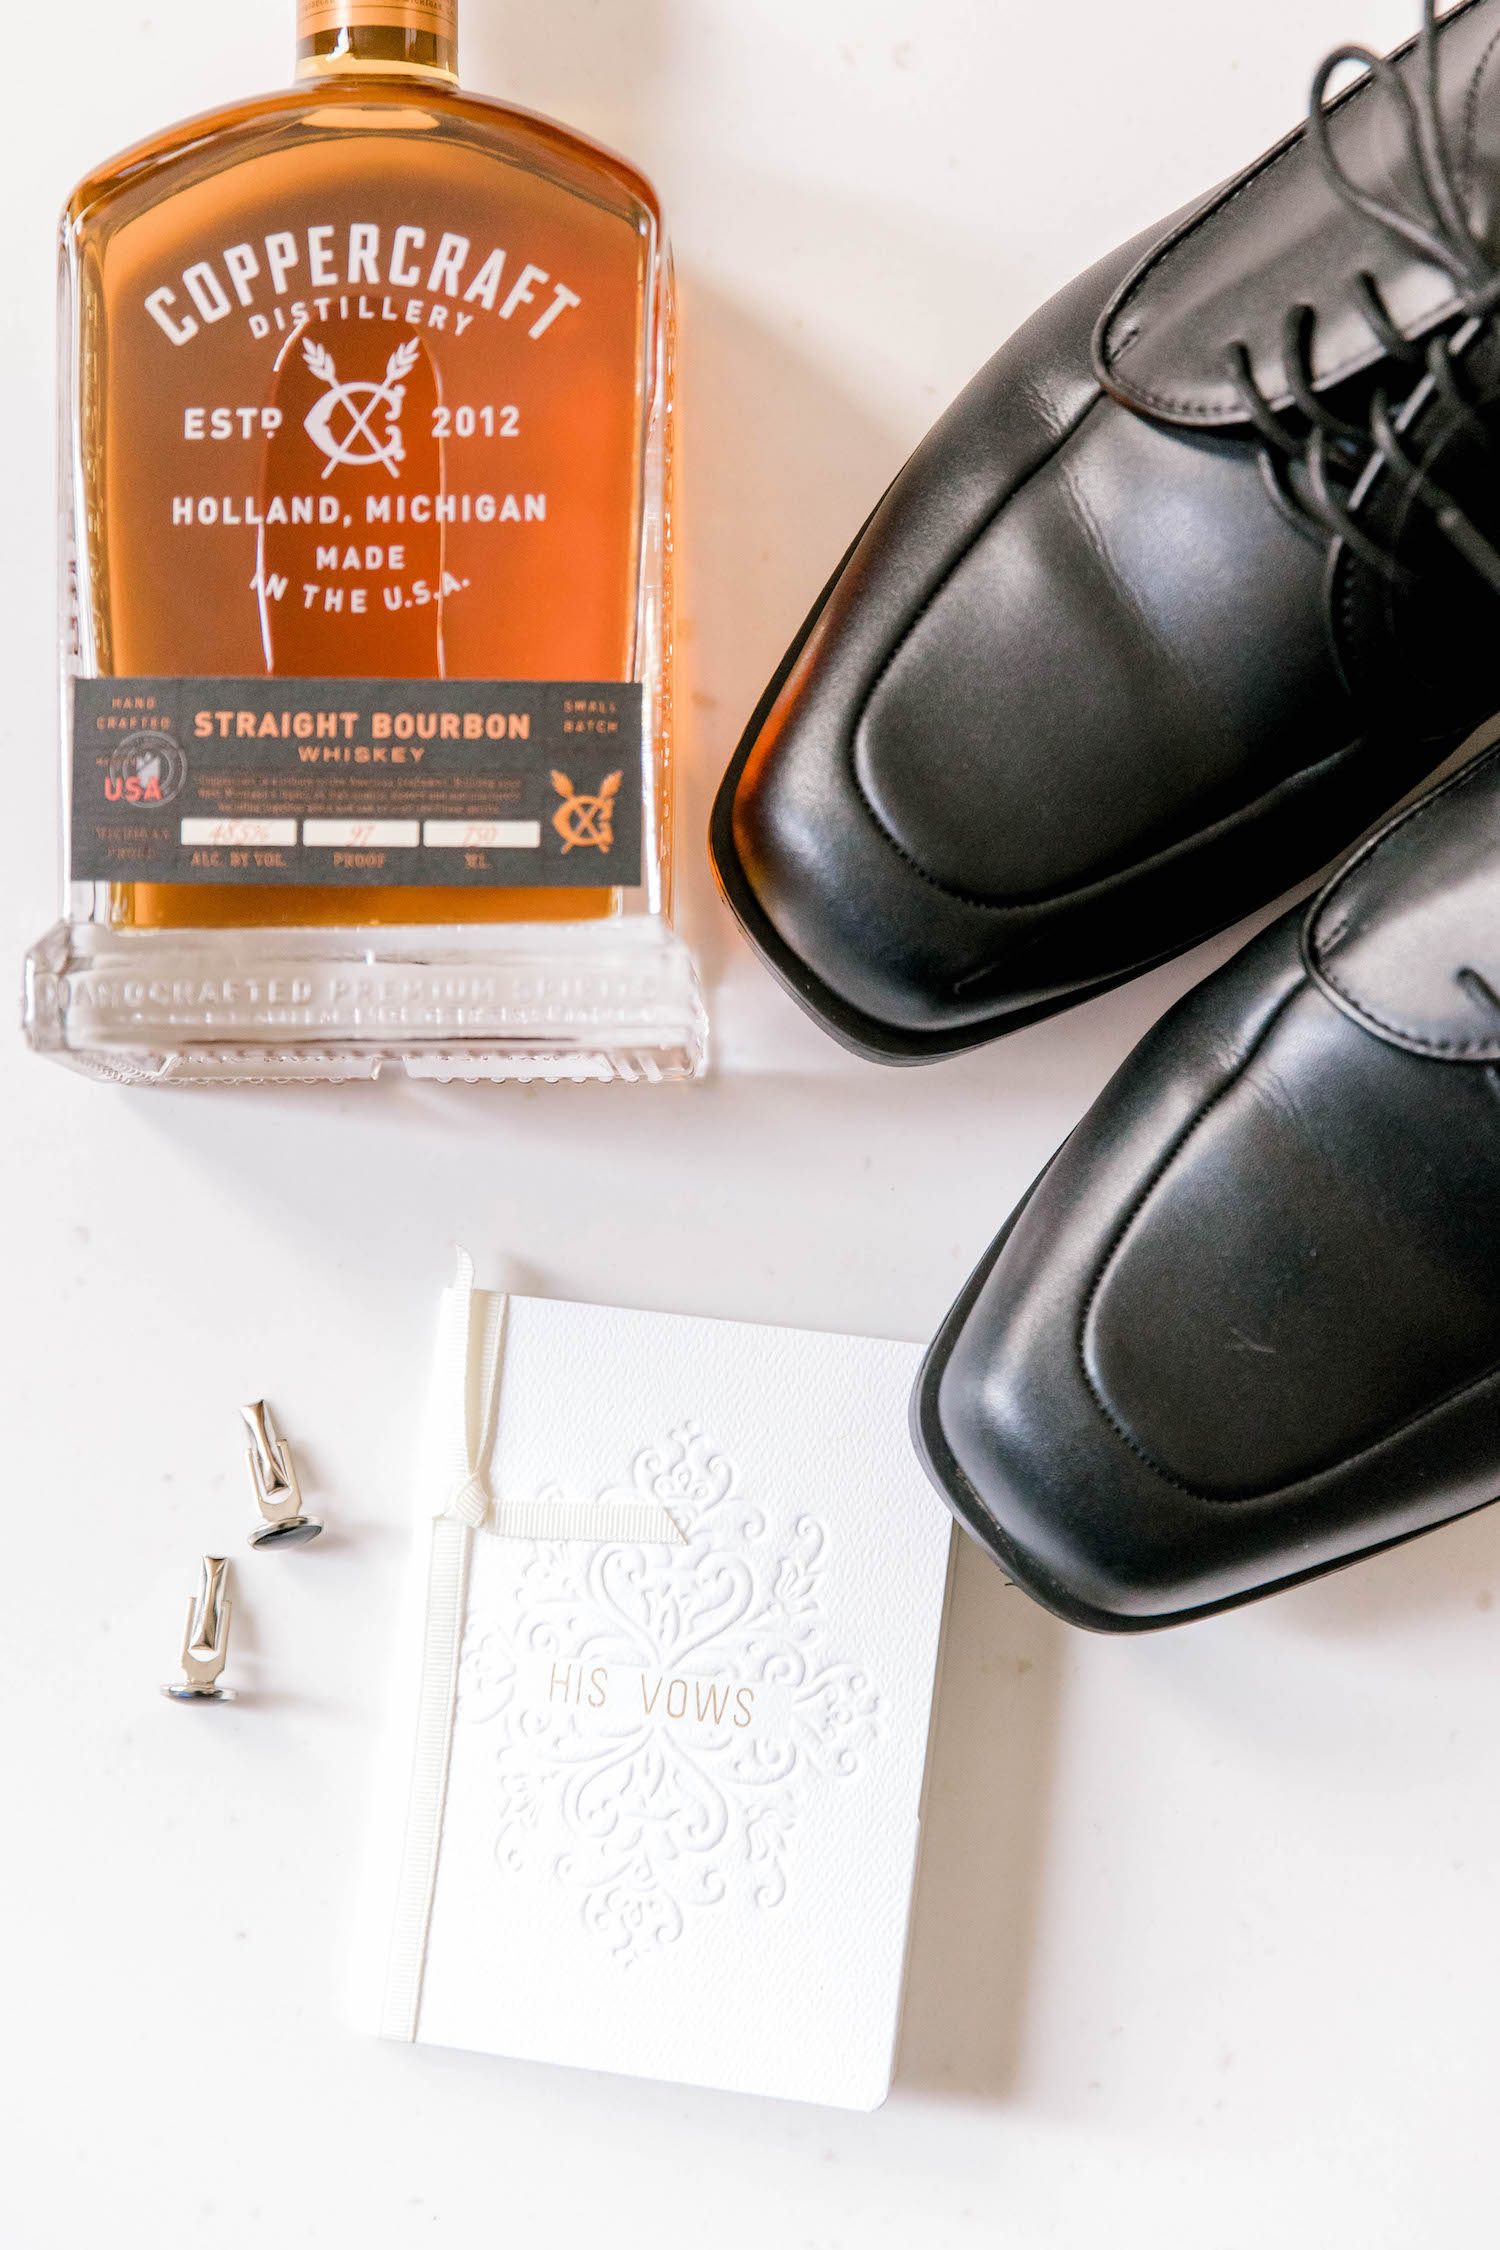 Grooms attire and whiskey for City Flats Hotel wedding